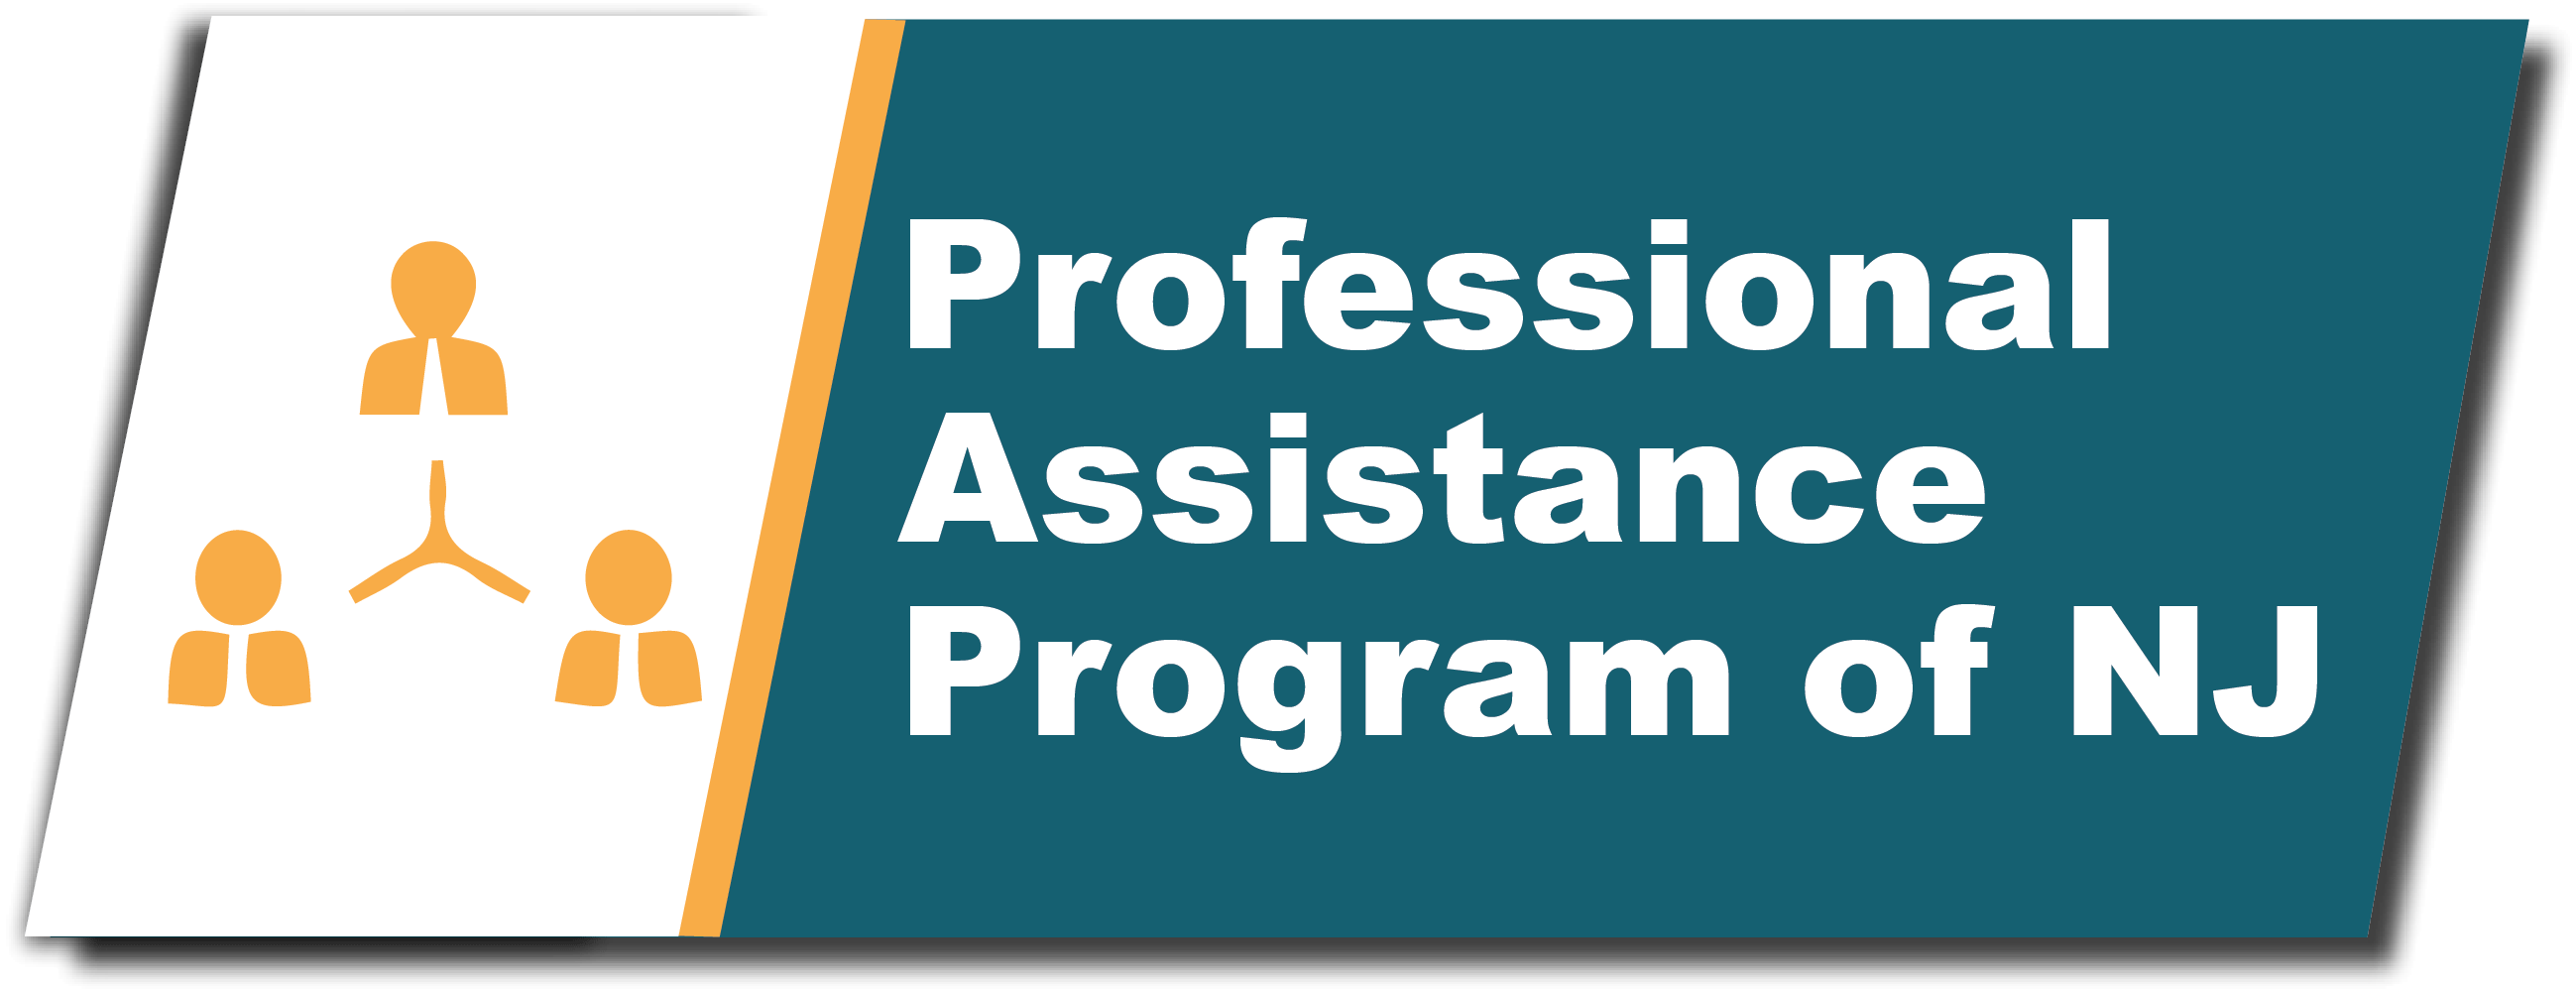 professional assistance program of nj